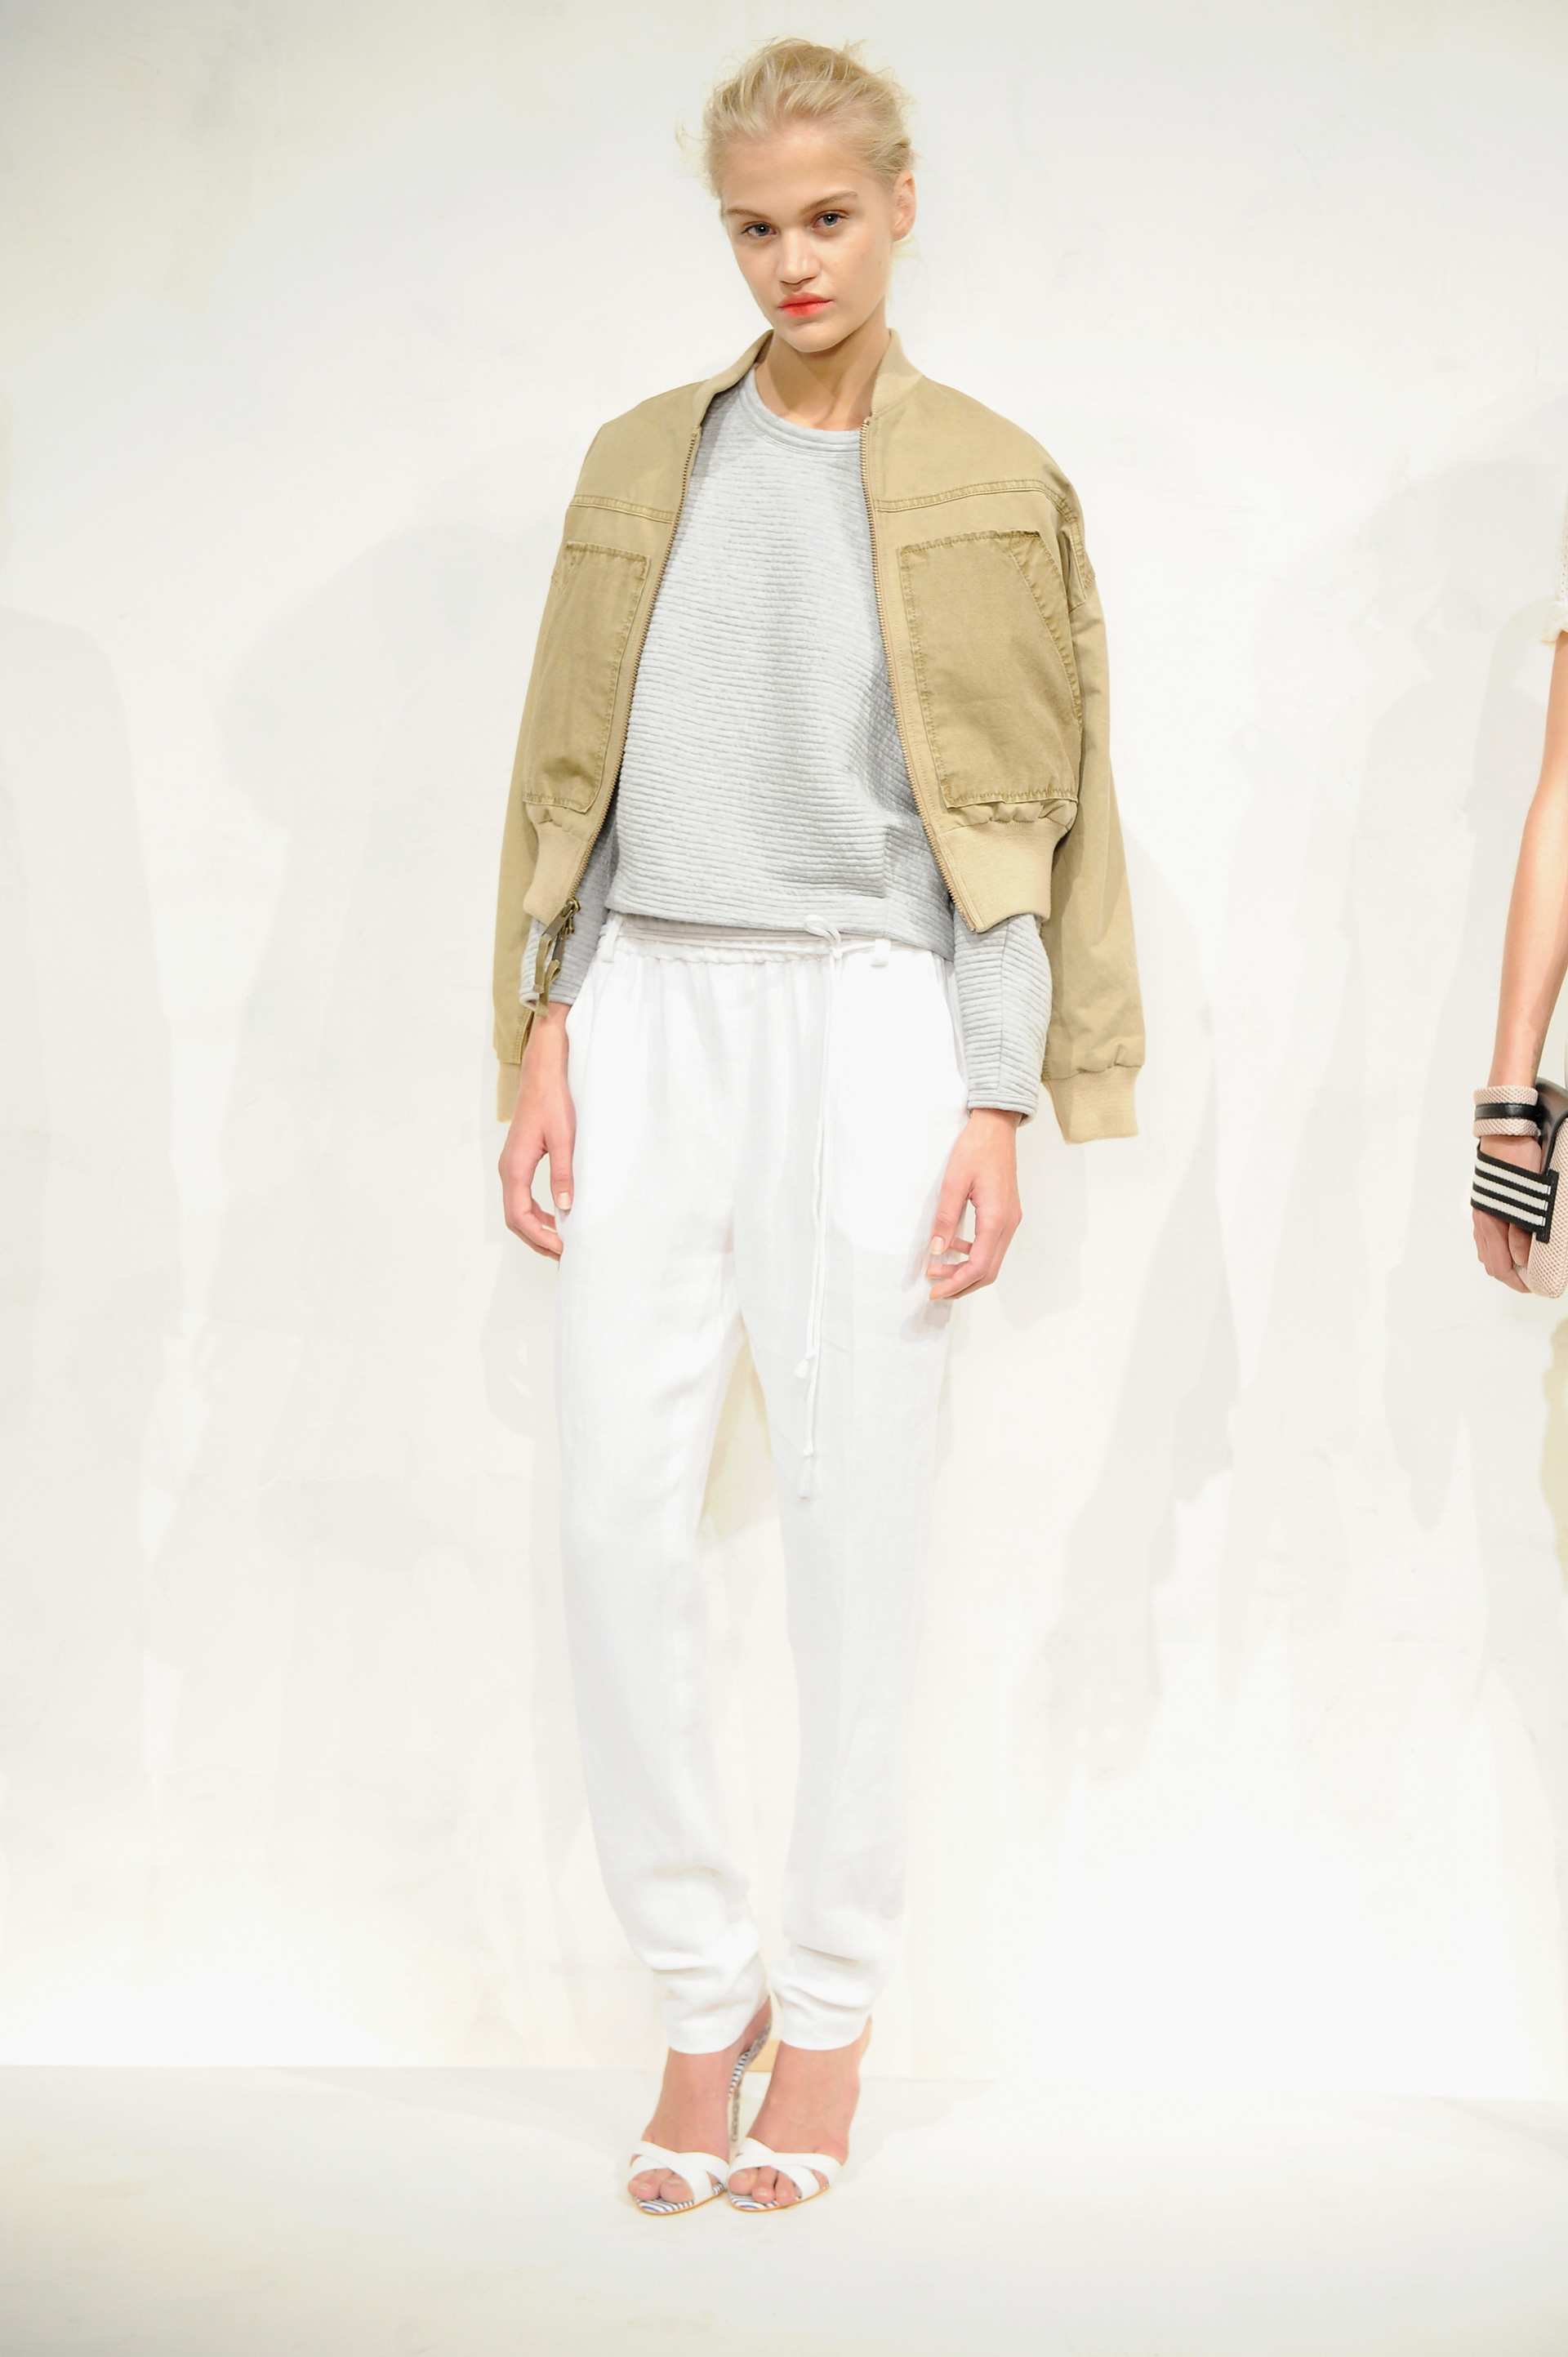 2015 J.Crew collection pieces 1